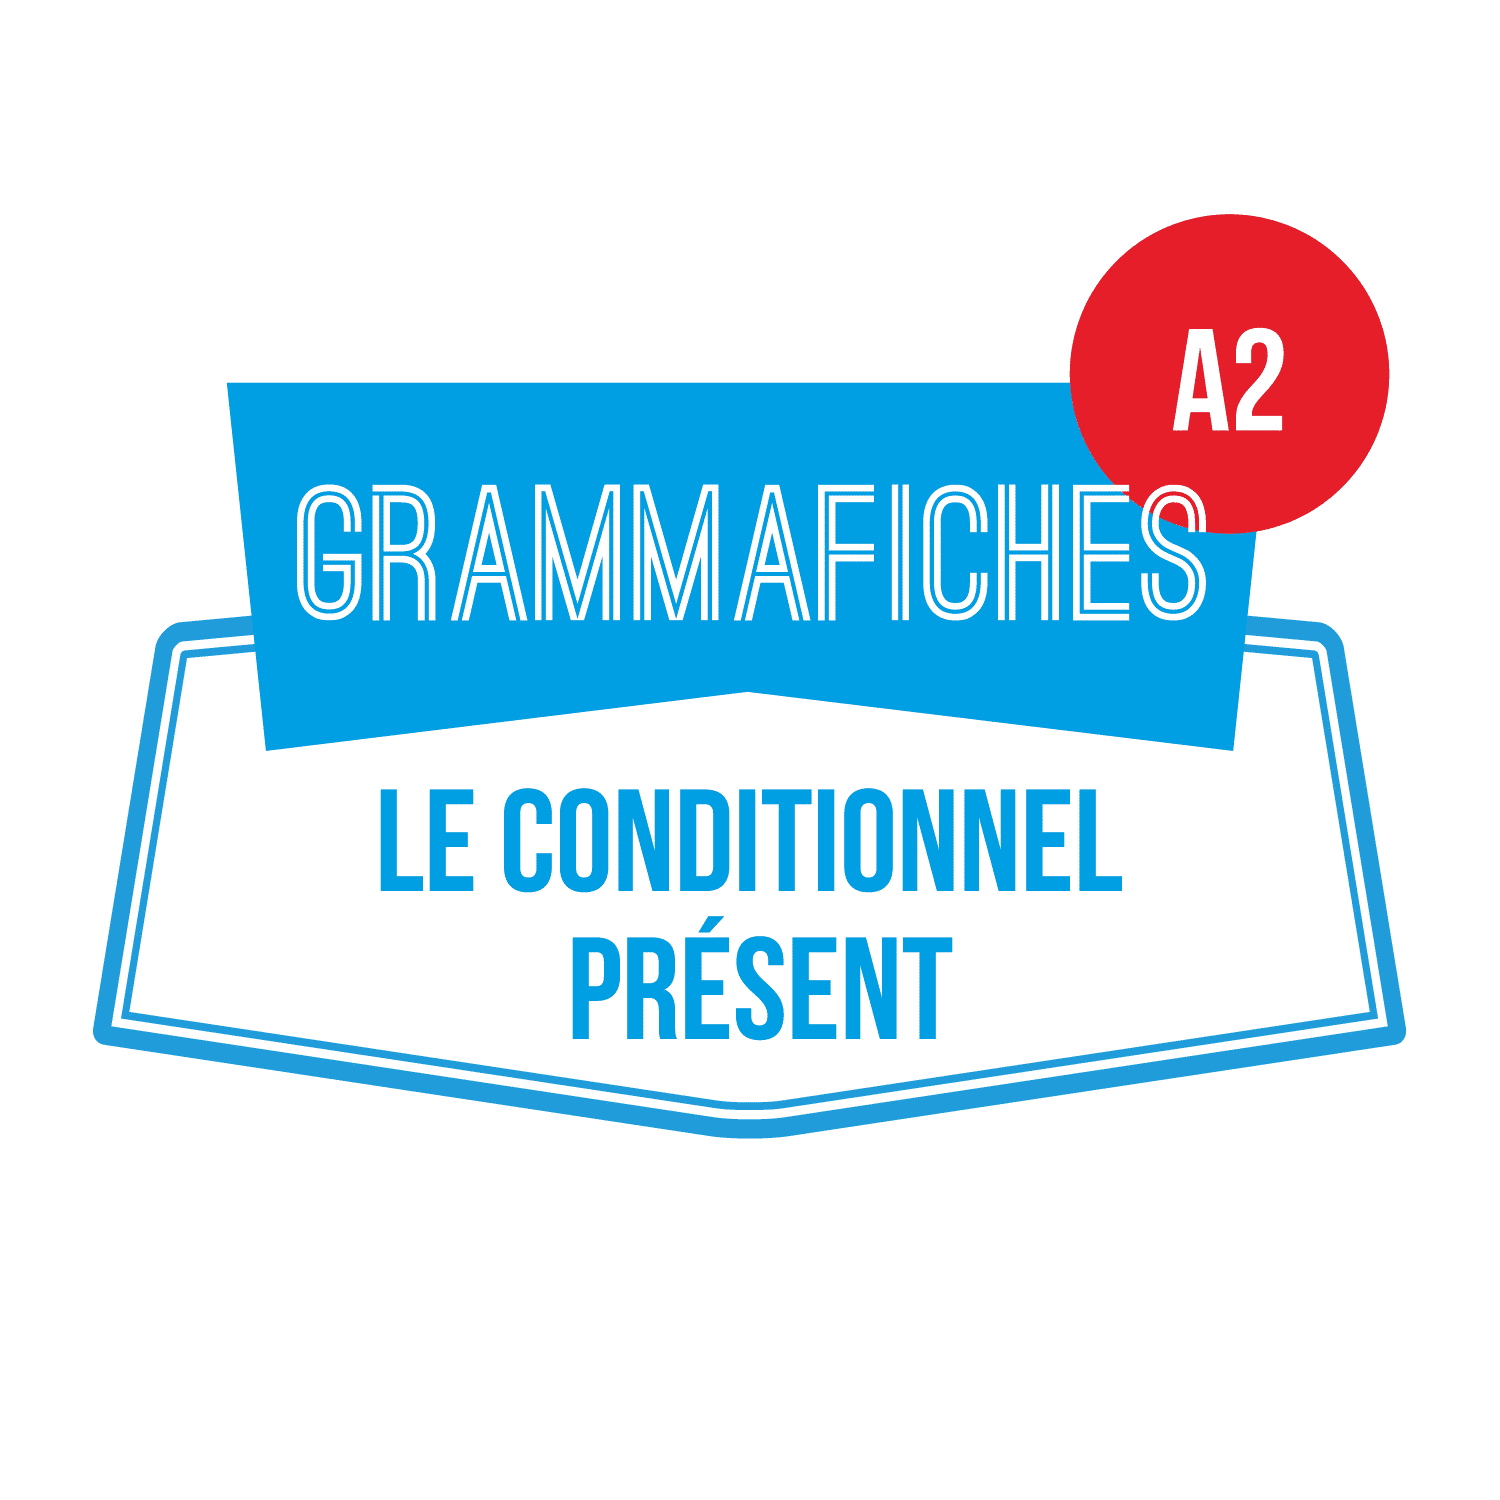 Grammafiche A2: le conditionnel présent